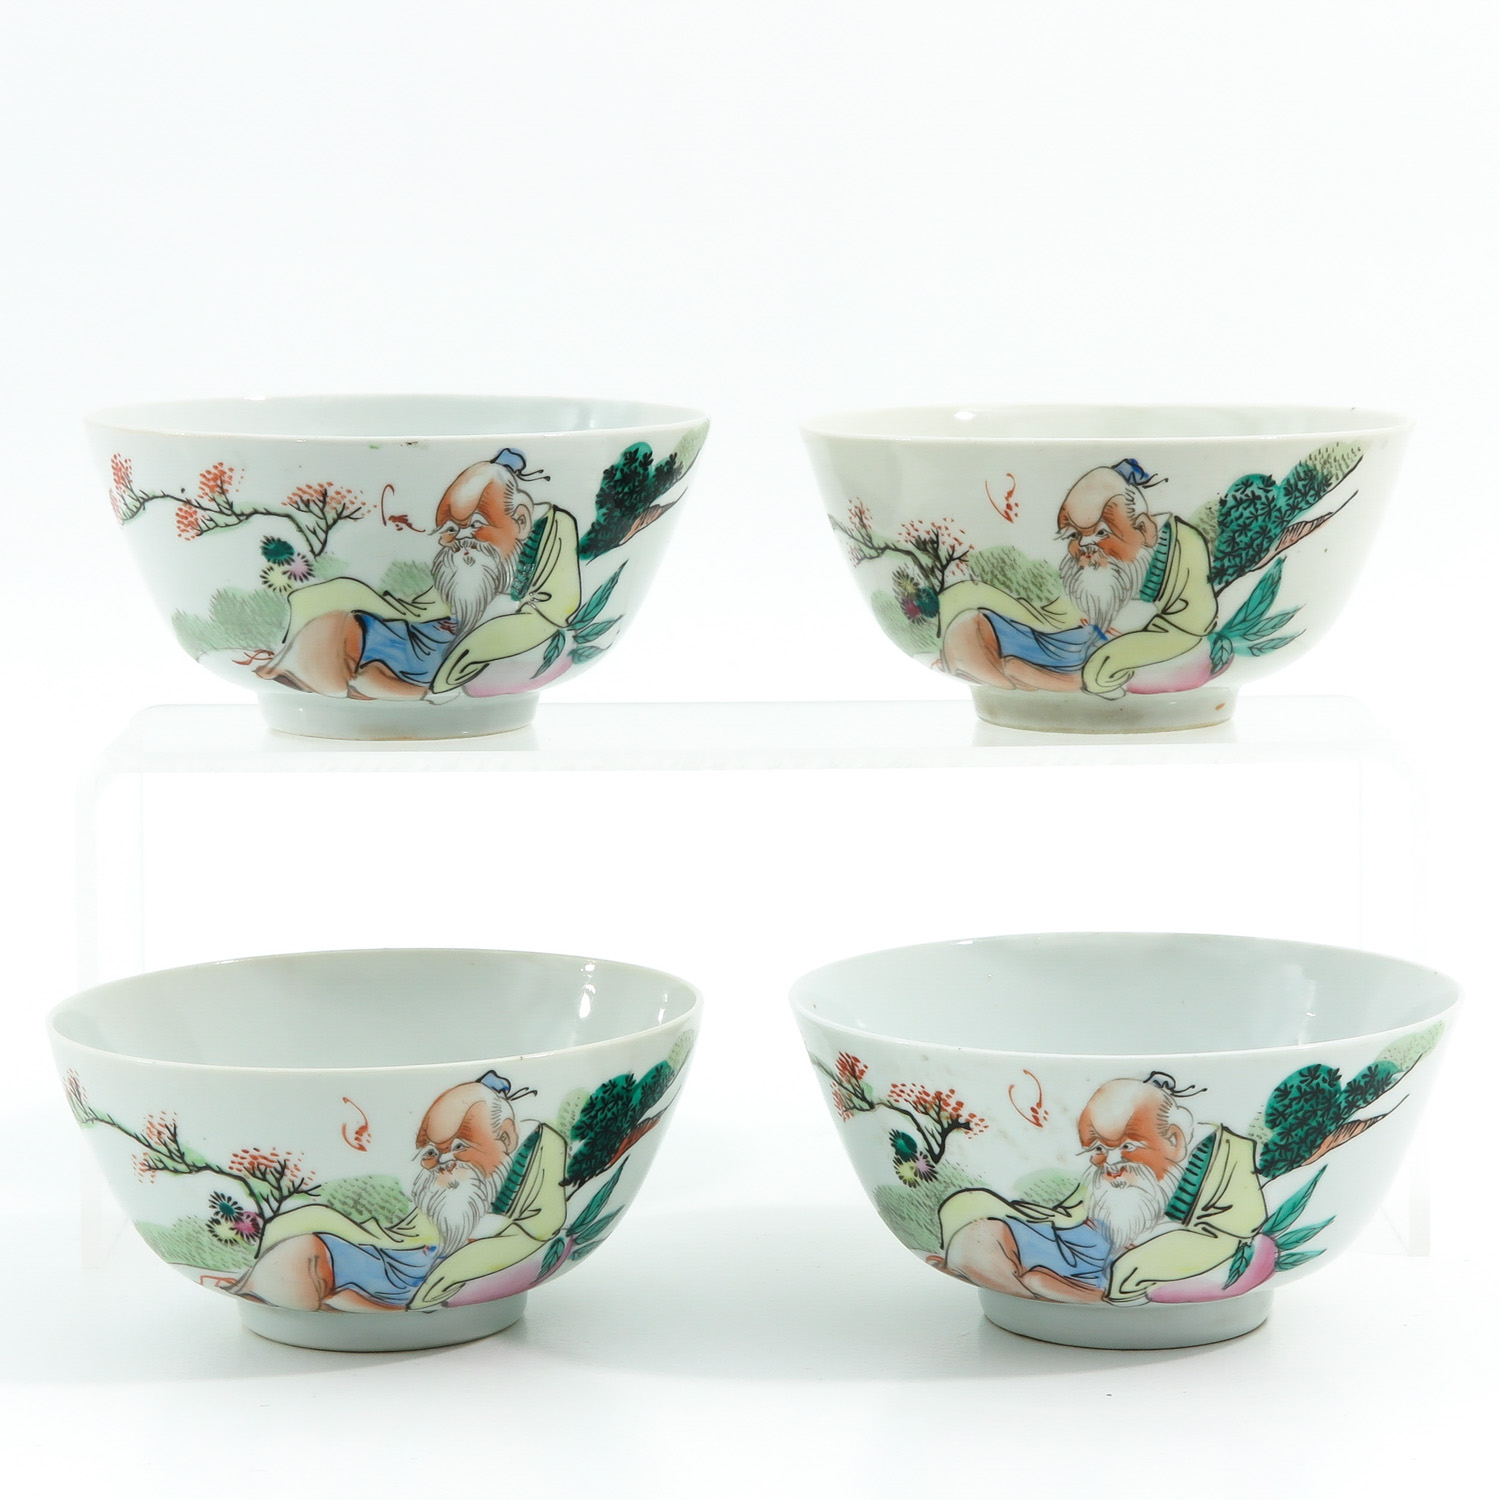 A Series of Polychrome Bowls